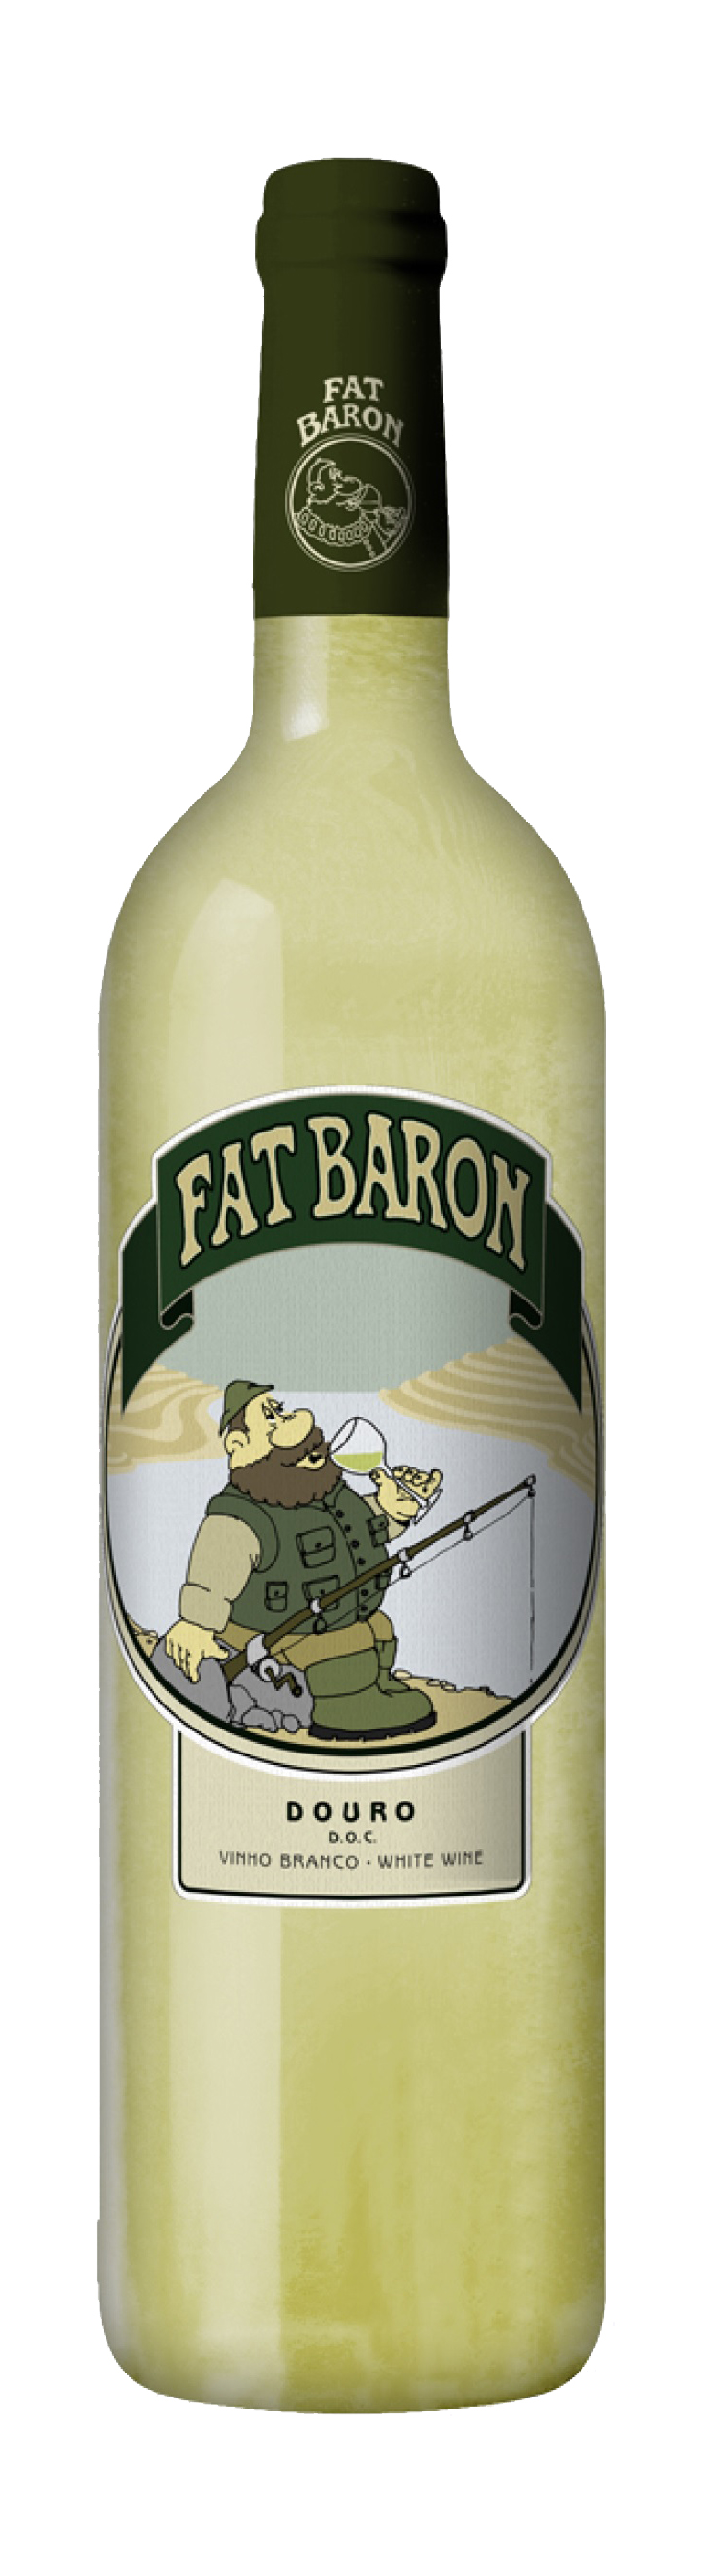 Copy of FAT BARON WHITE